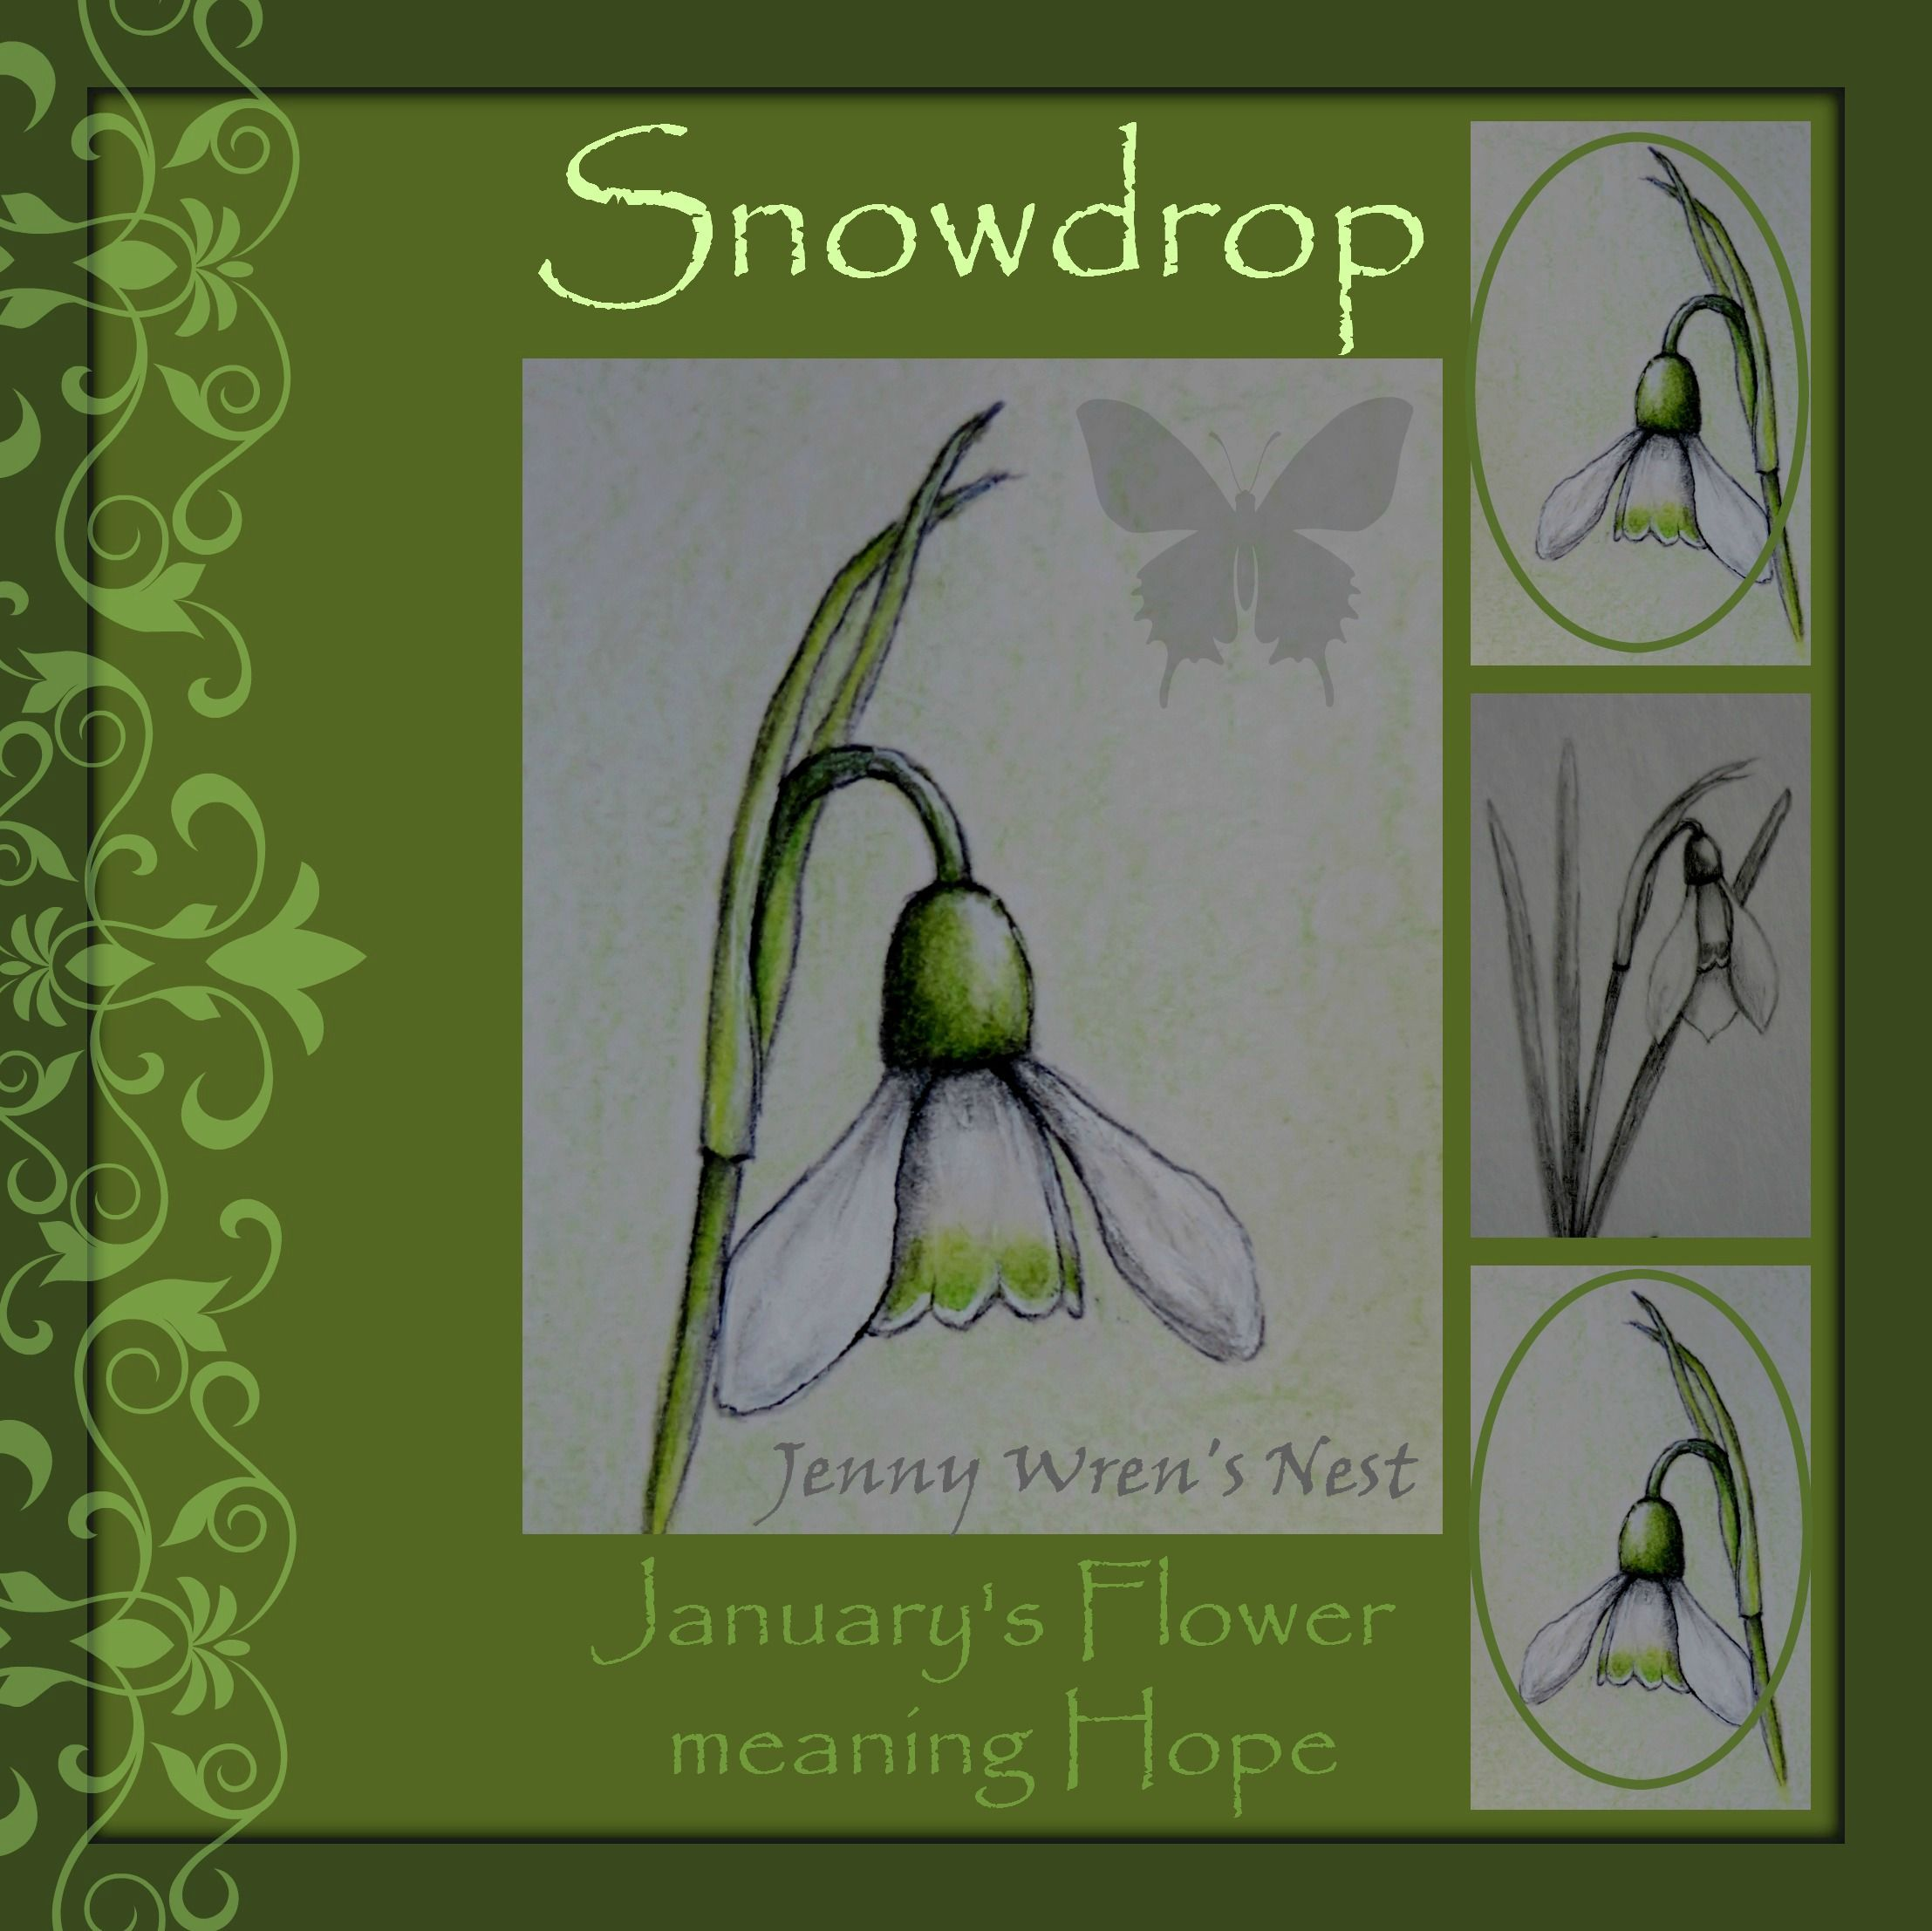 Snowdrop Month Of January Flower And Its Meaning Https Www Facebook Com Jennywrensnest January Flower Flower Meanings Flower Art